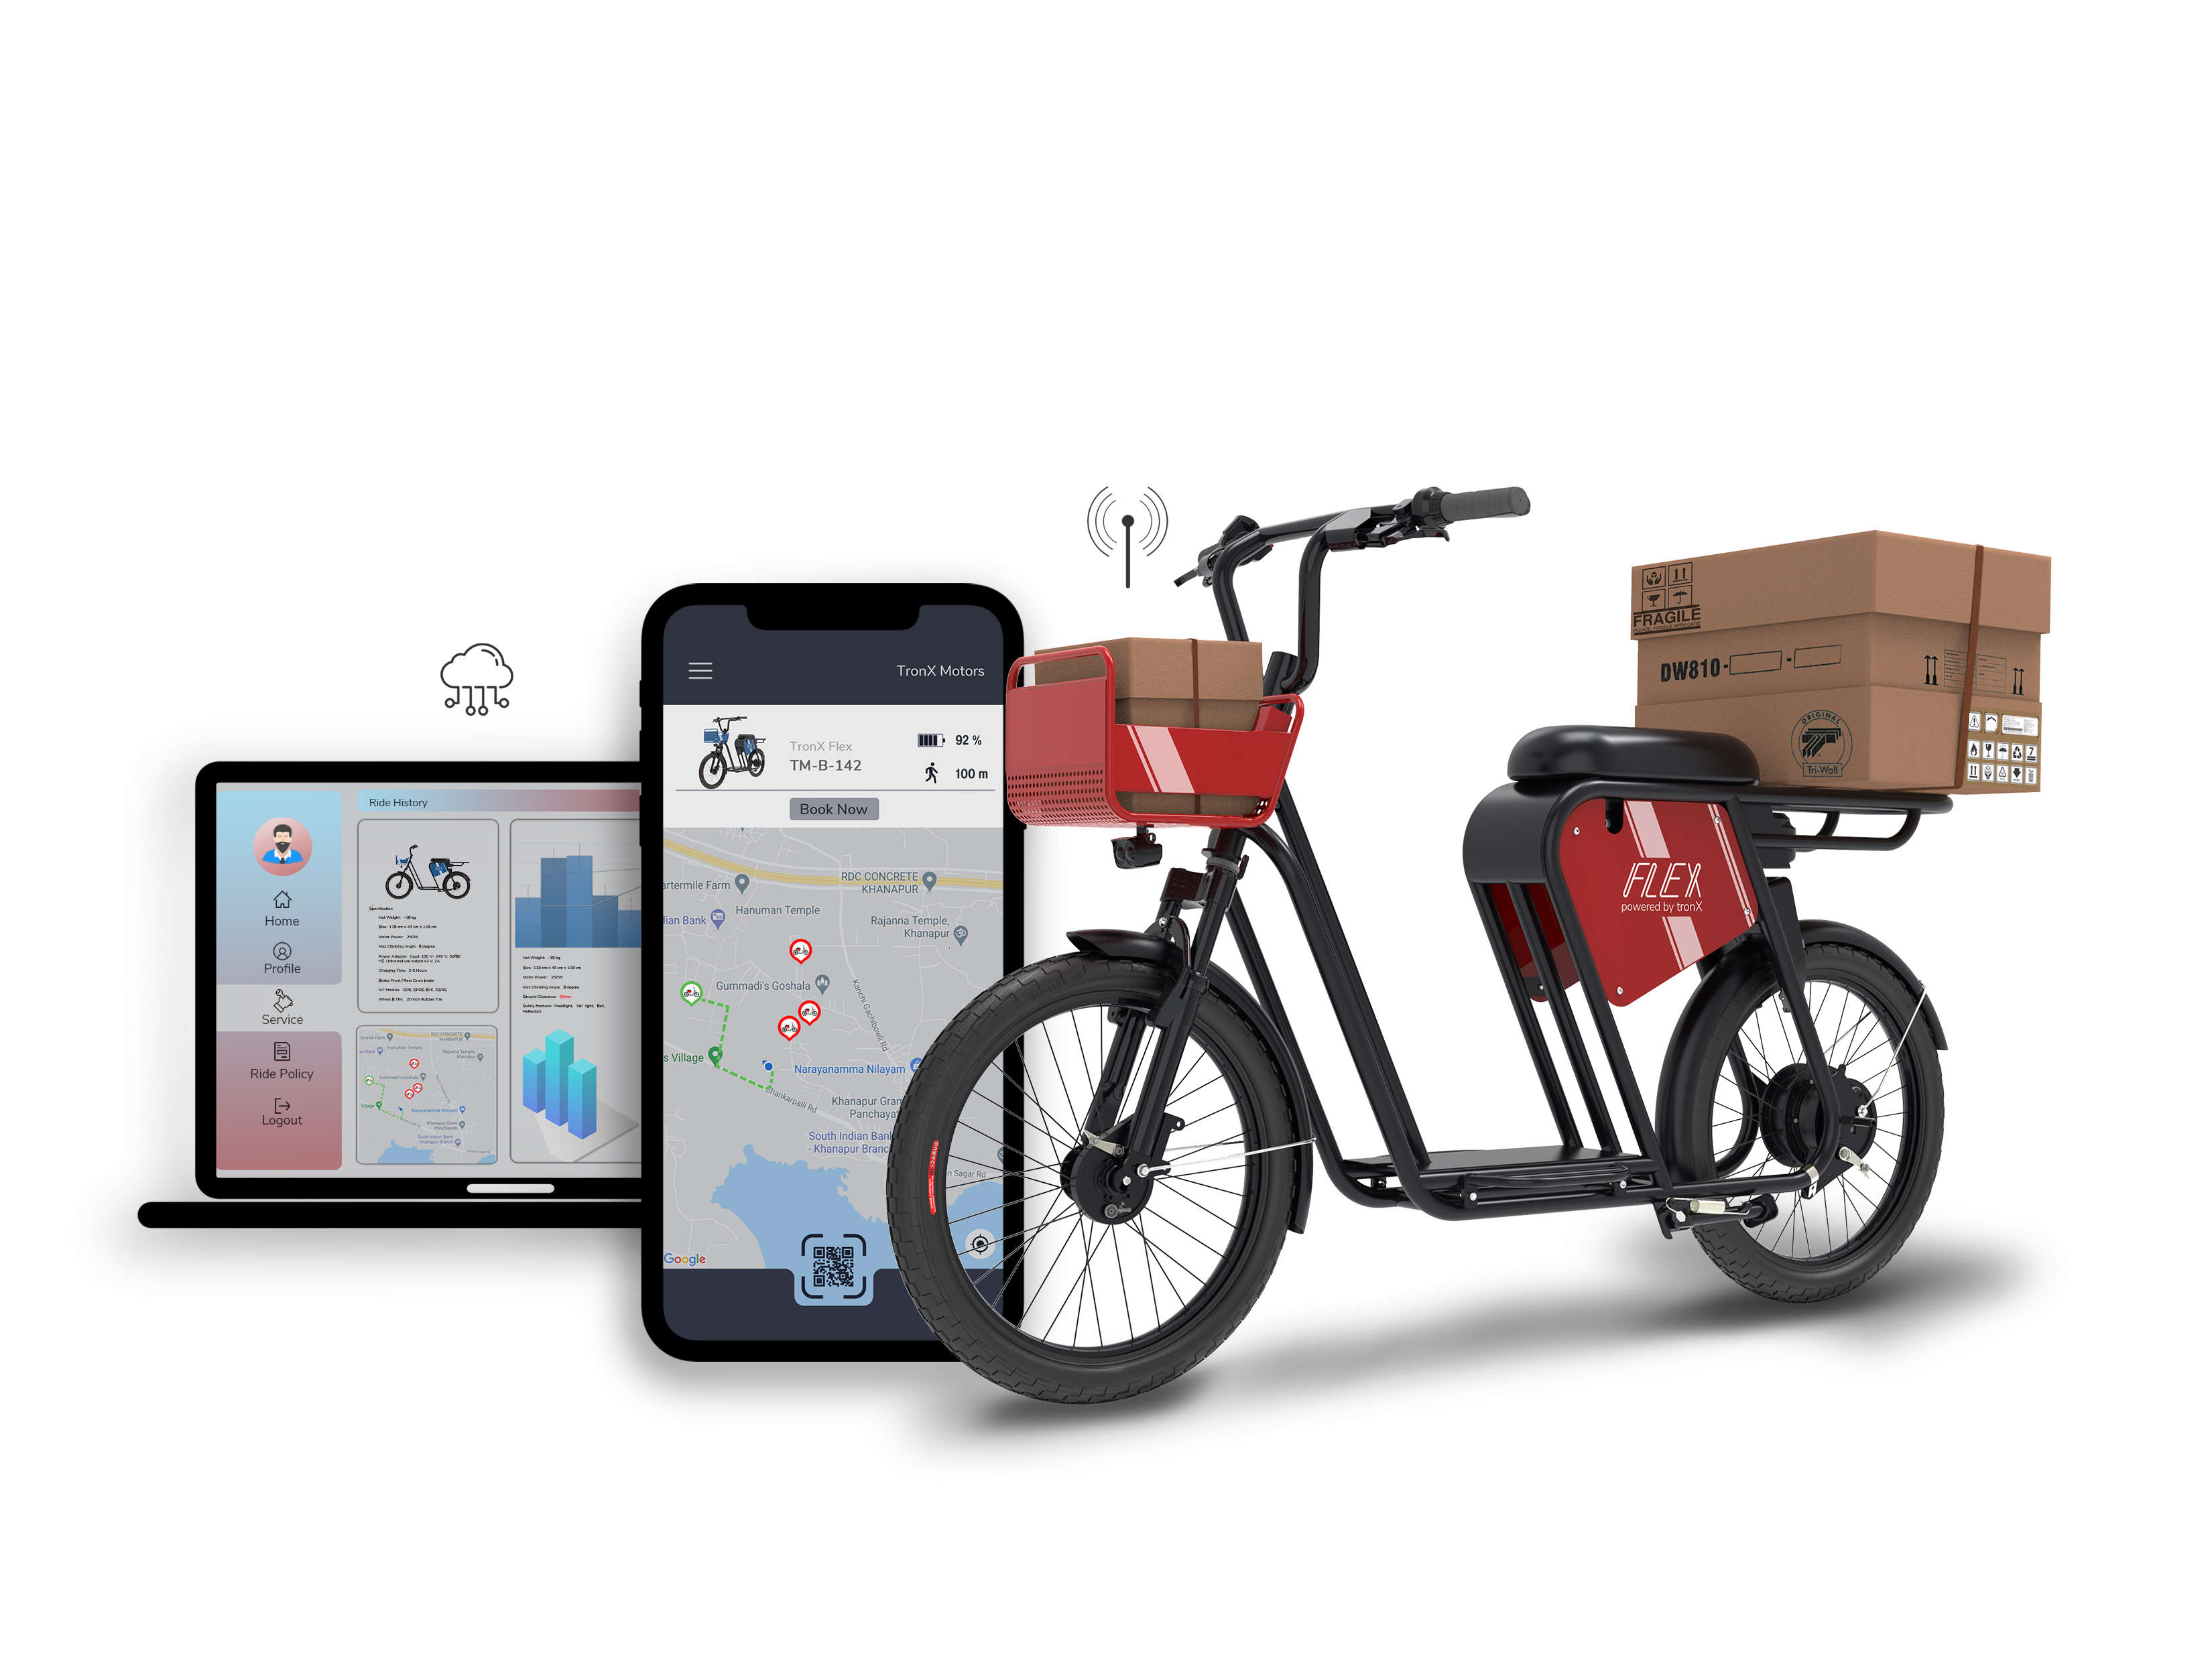 tbike flex is powered by tronX™, the native AIOT platform that enables several smart and intelligent features for fleet owners, riders and last-mile delivery operators.